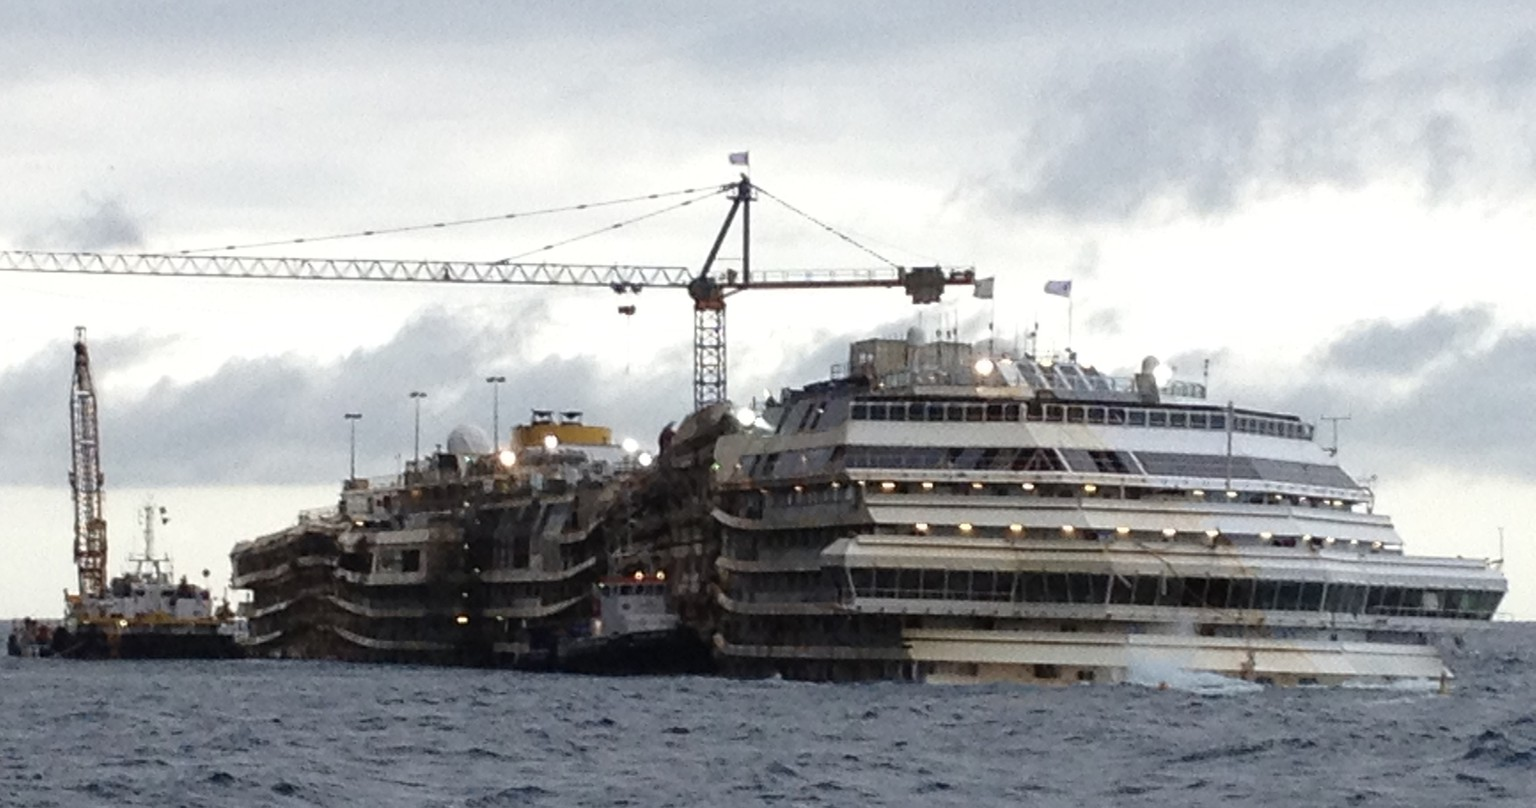 FILE -- In this file photo taken on Jan. 23, 2014, the Costa Concordia cruise liner lies in the waters of the Giglio Island, Italy. The last major stage of work has begun to ready the shipwrecked Costa Concordia cruise liner for removal to land for scrapping. On Monday, April 28, 2014, a first tank — the biggest and heaviest of 19 — was fastened to the starboard side. The tanks will be filled with water to help stabilize the Concordia, now resting on an artificial seabed after a daring engineering operation set it upright in September. Eventually, the tanks will be drained and function like giant water wings to help float away the Concordia. (AP Photo/Luigi Navarra)